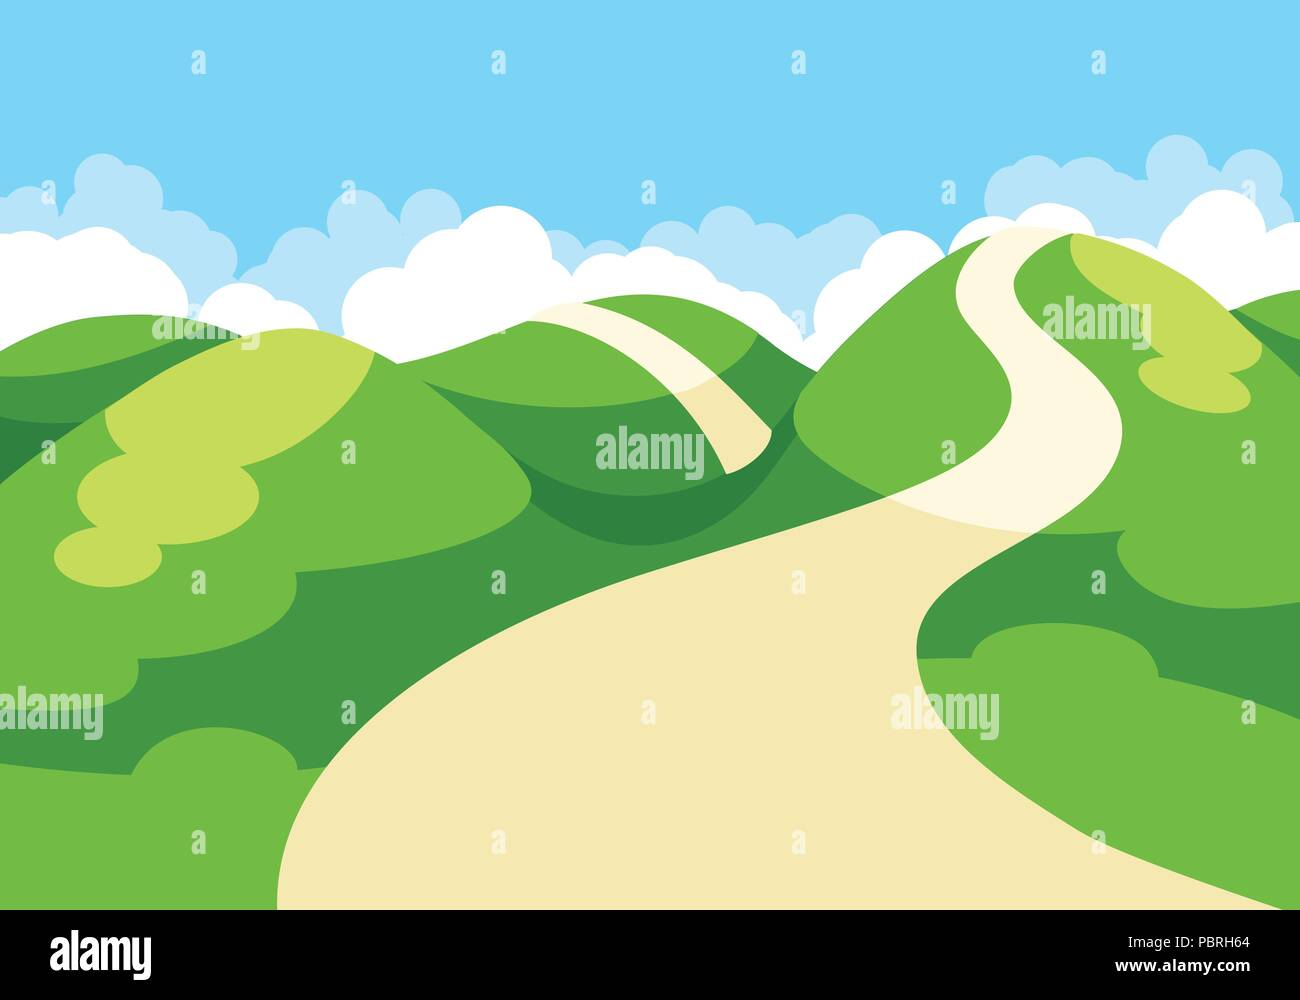 Cartoon Illustration Of Spring Landscape With Blue Sky And Green Hills Stock Vector Image Art Alamy